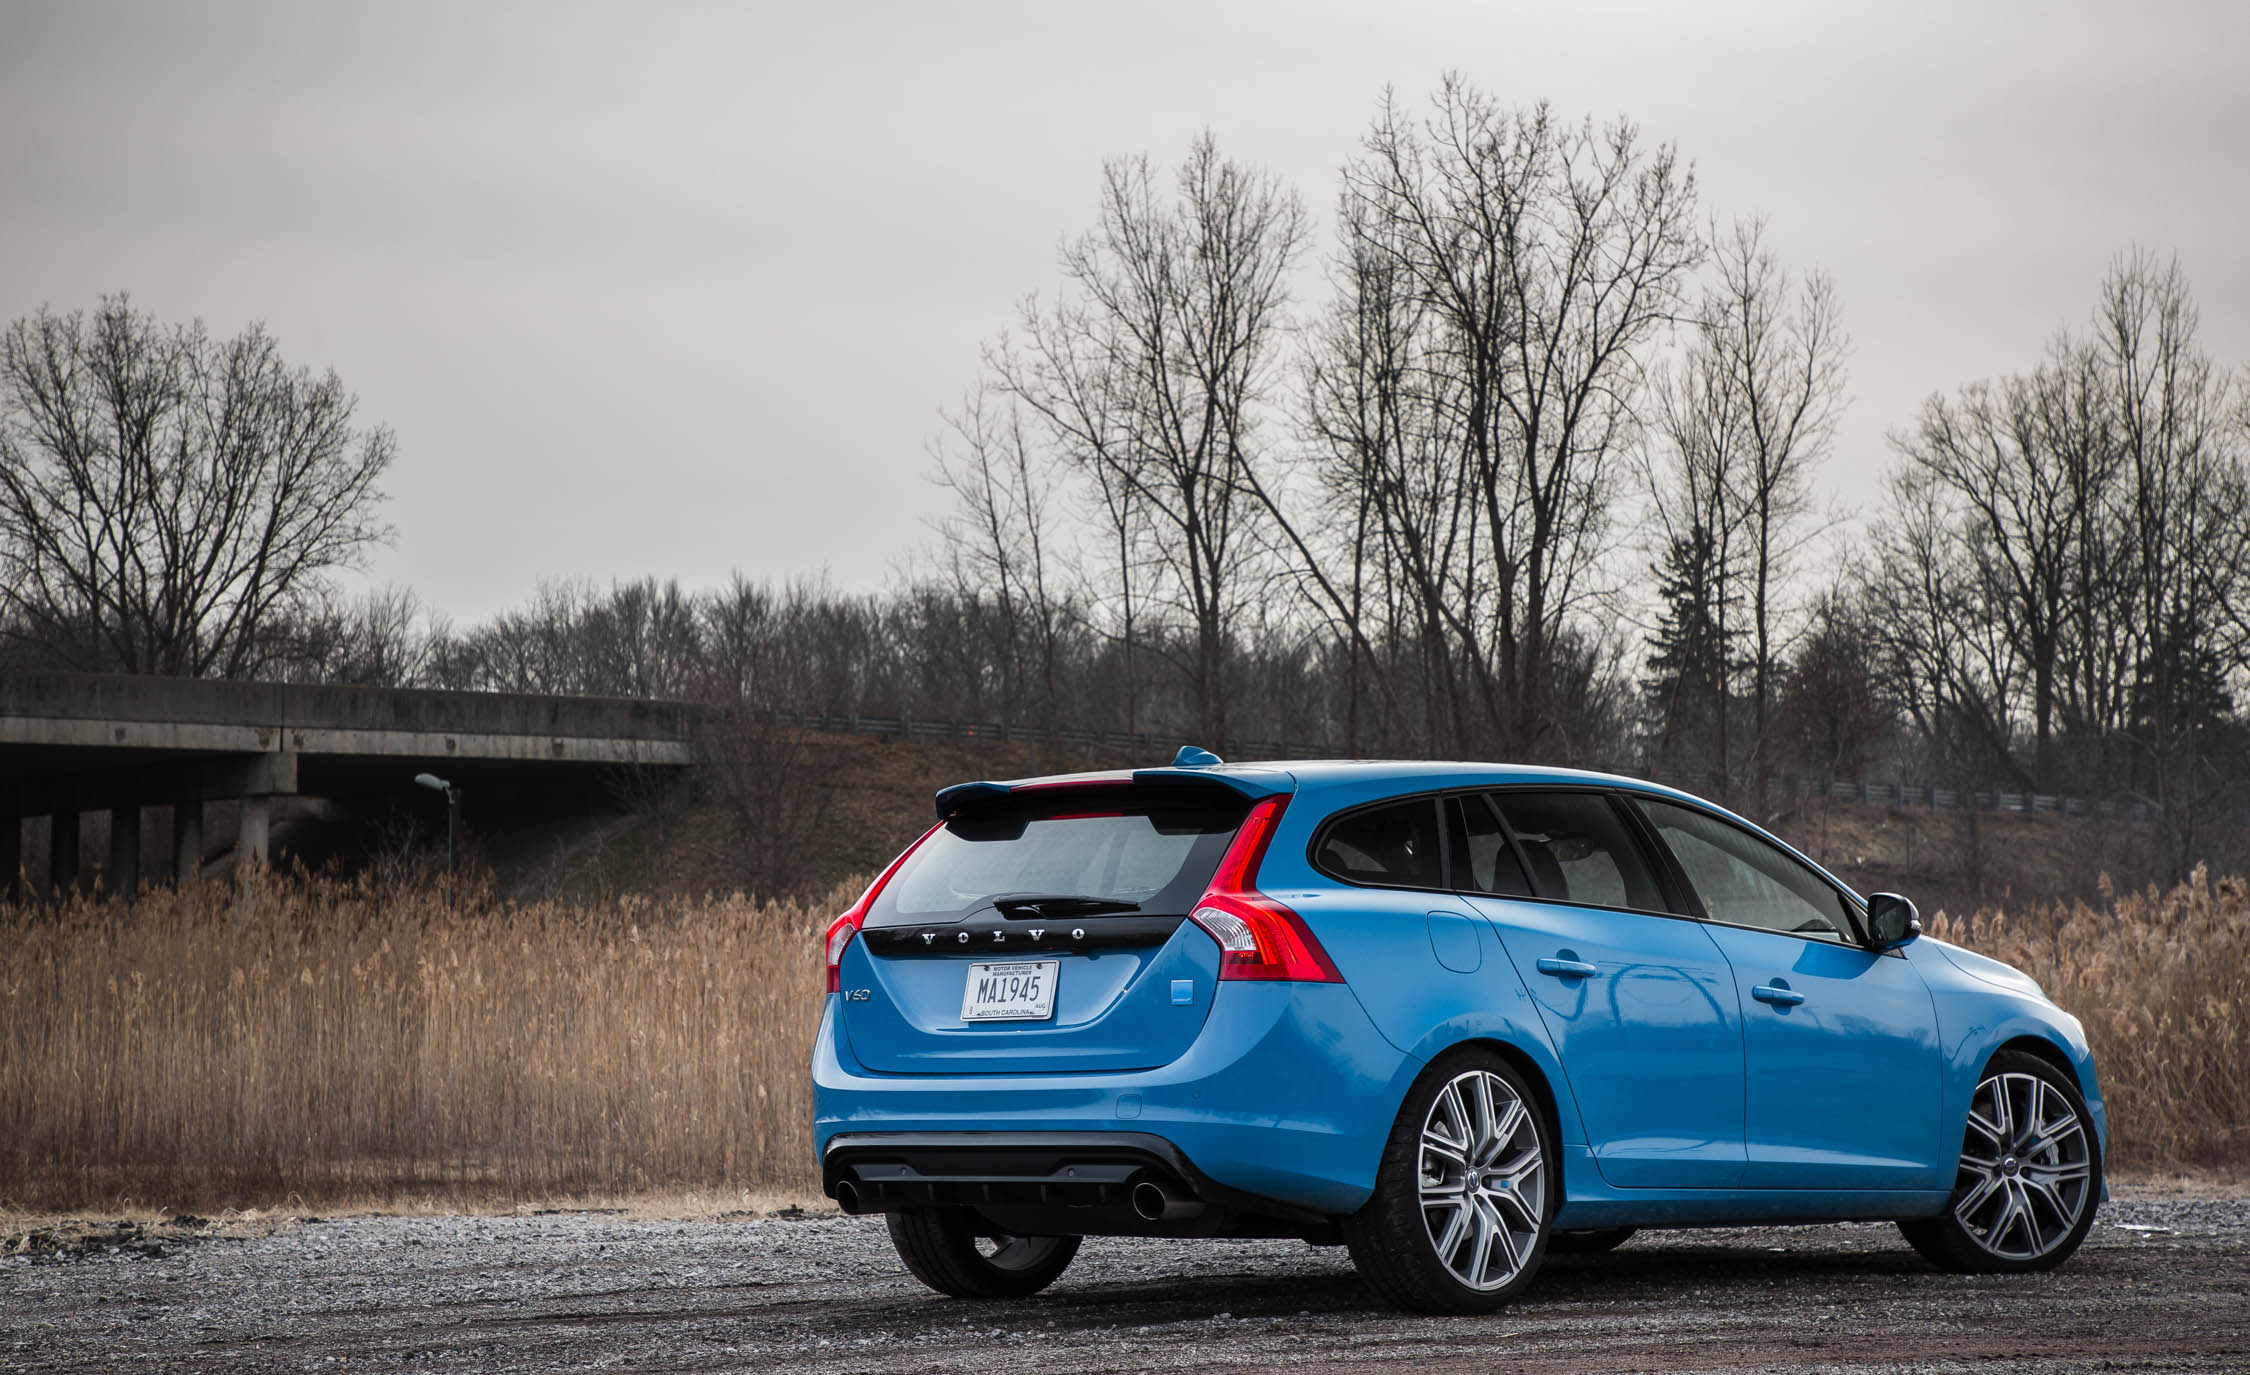 2017 Volvo V60 Polestar Exterior Rear And Side (View 13 of 53)